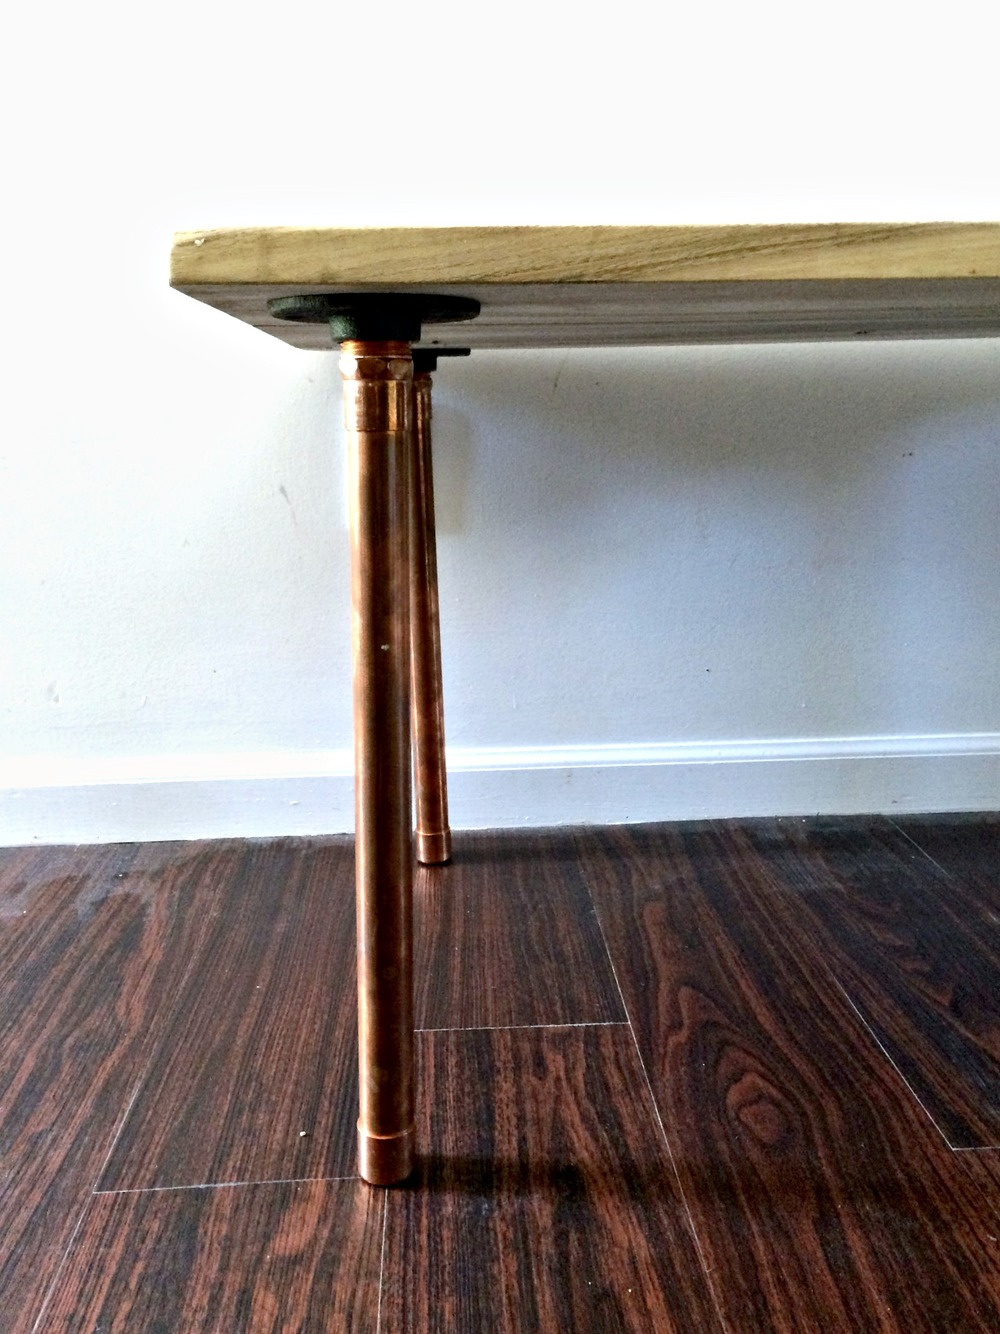 How to make a sofa table out of floor boards - If You Have A Place For Salvaged Wood It Will Help If They Are Able To Cut The Boards Square The Boards Plane The Boards And Run Them Through A Jointer